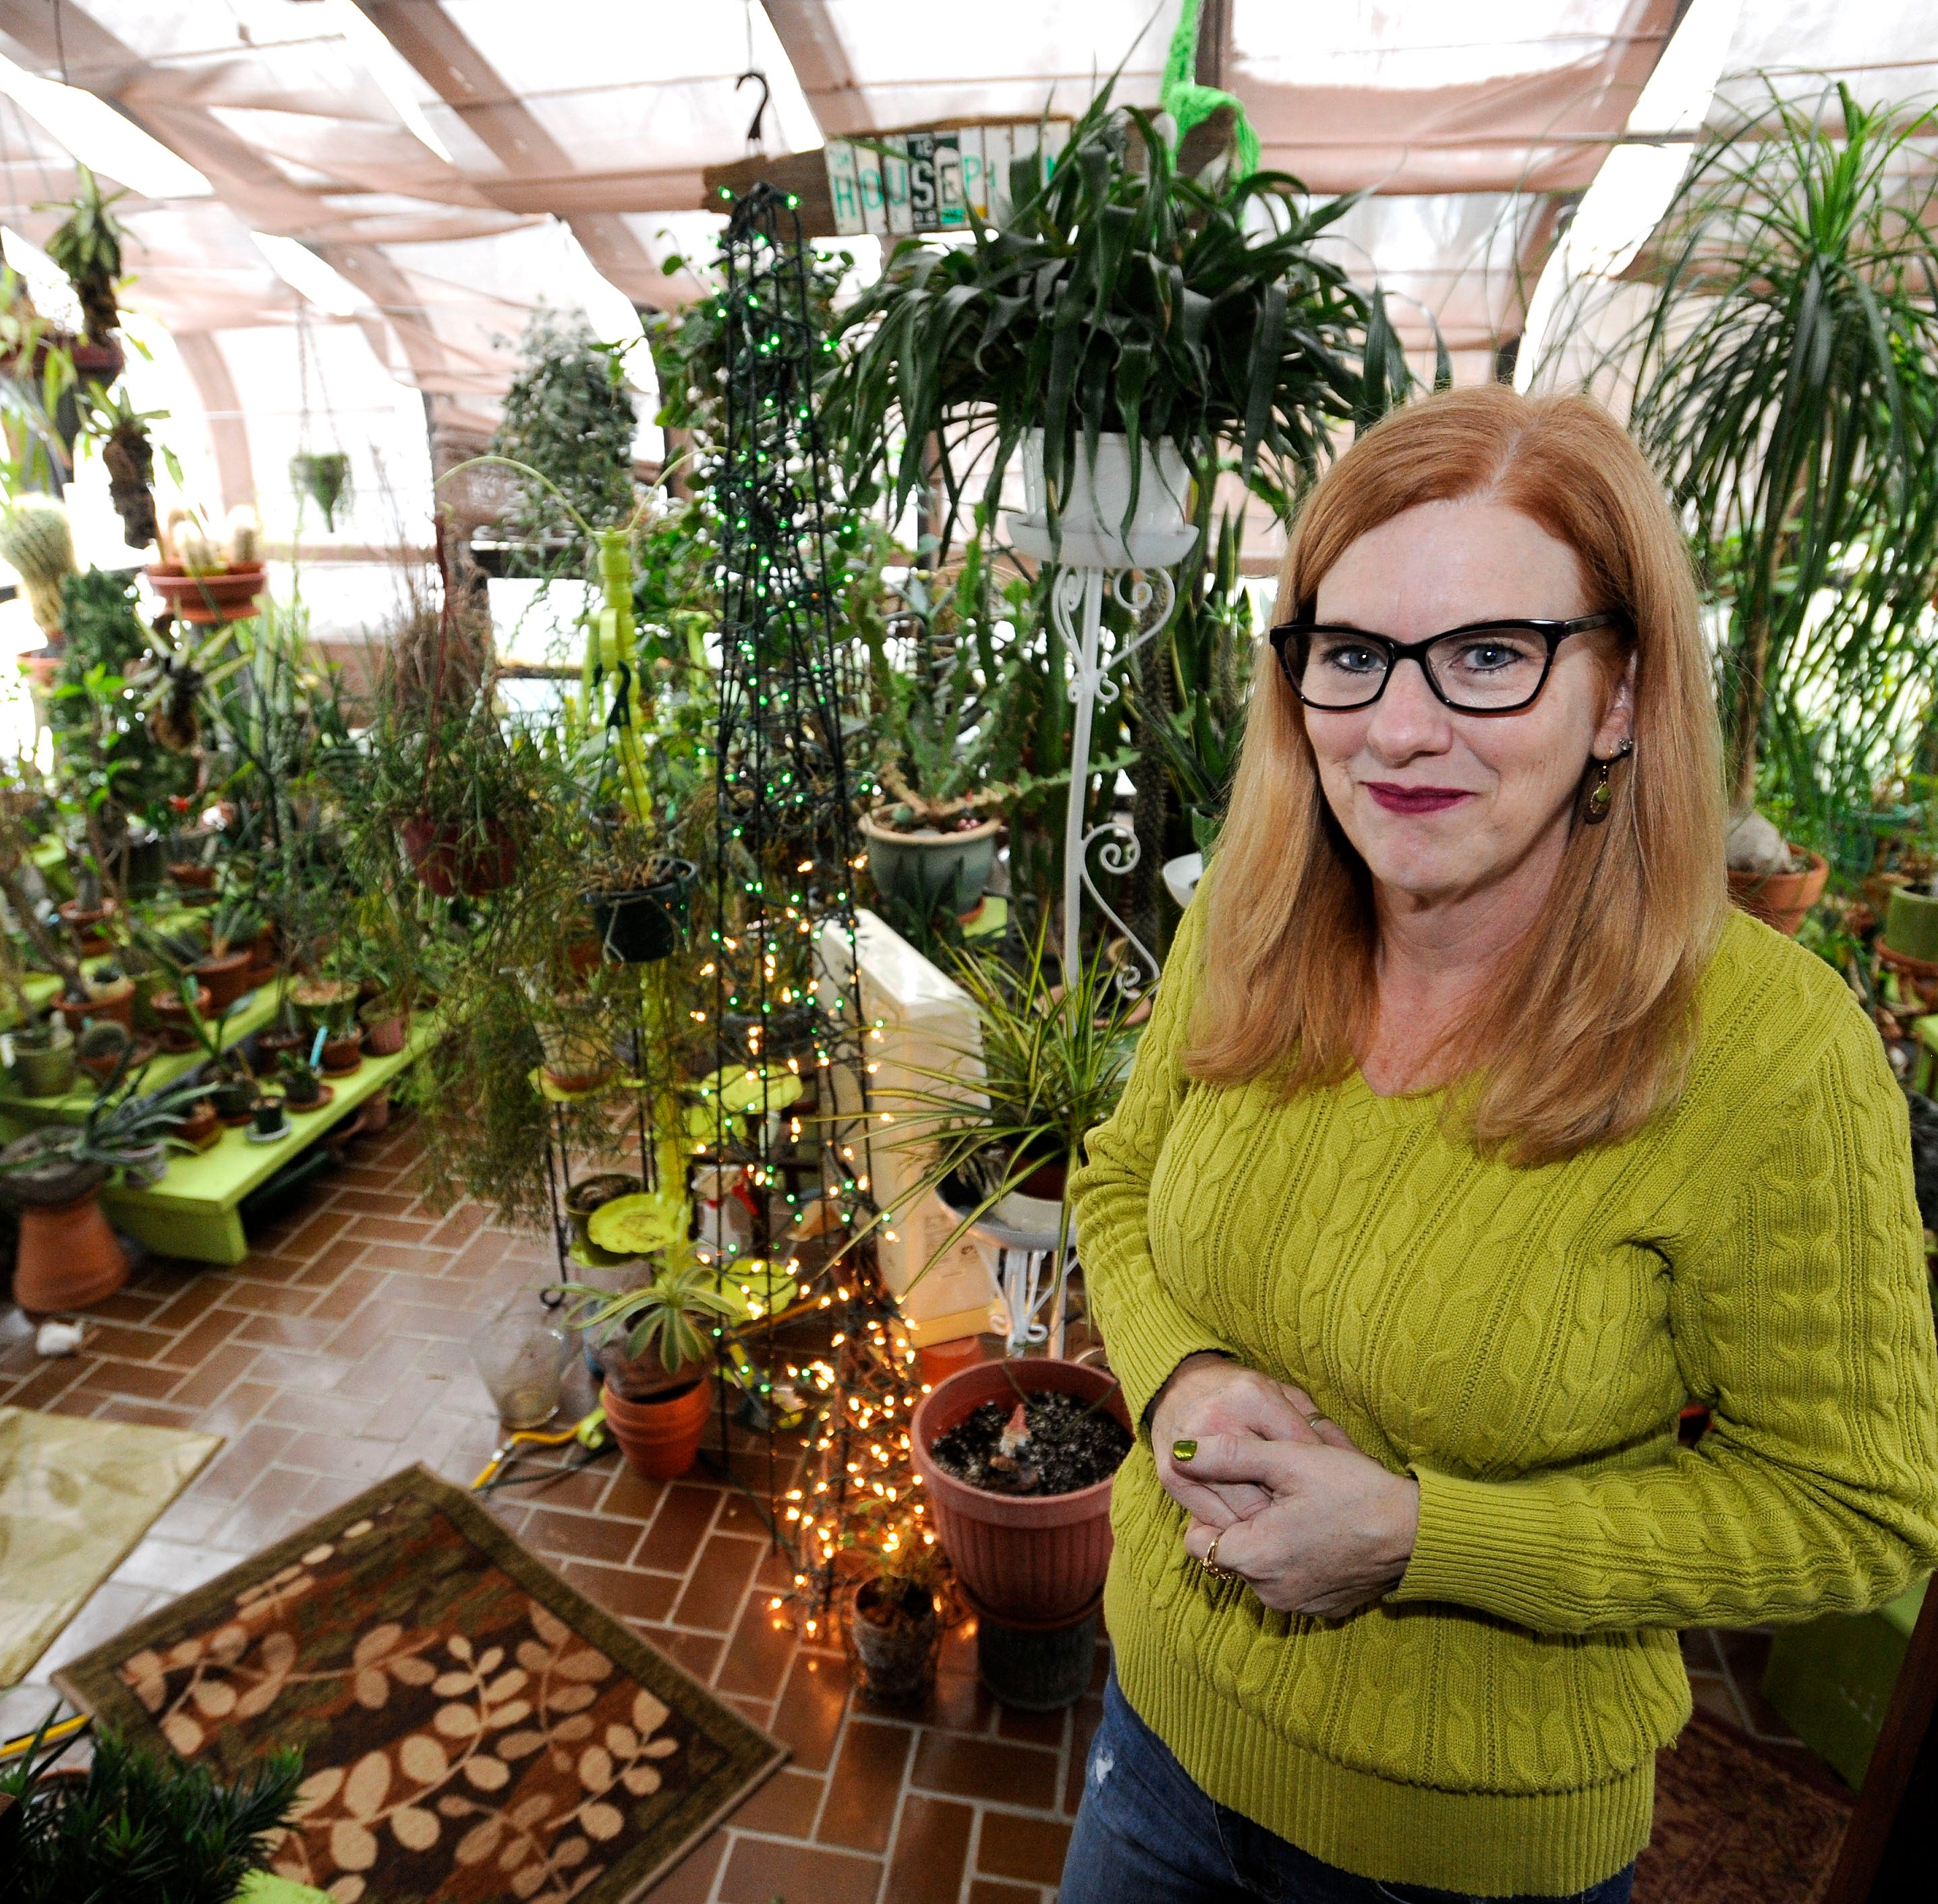 Livonia plant guru's now book sheds light on growing 'in the dark'